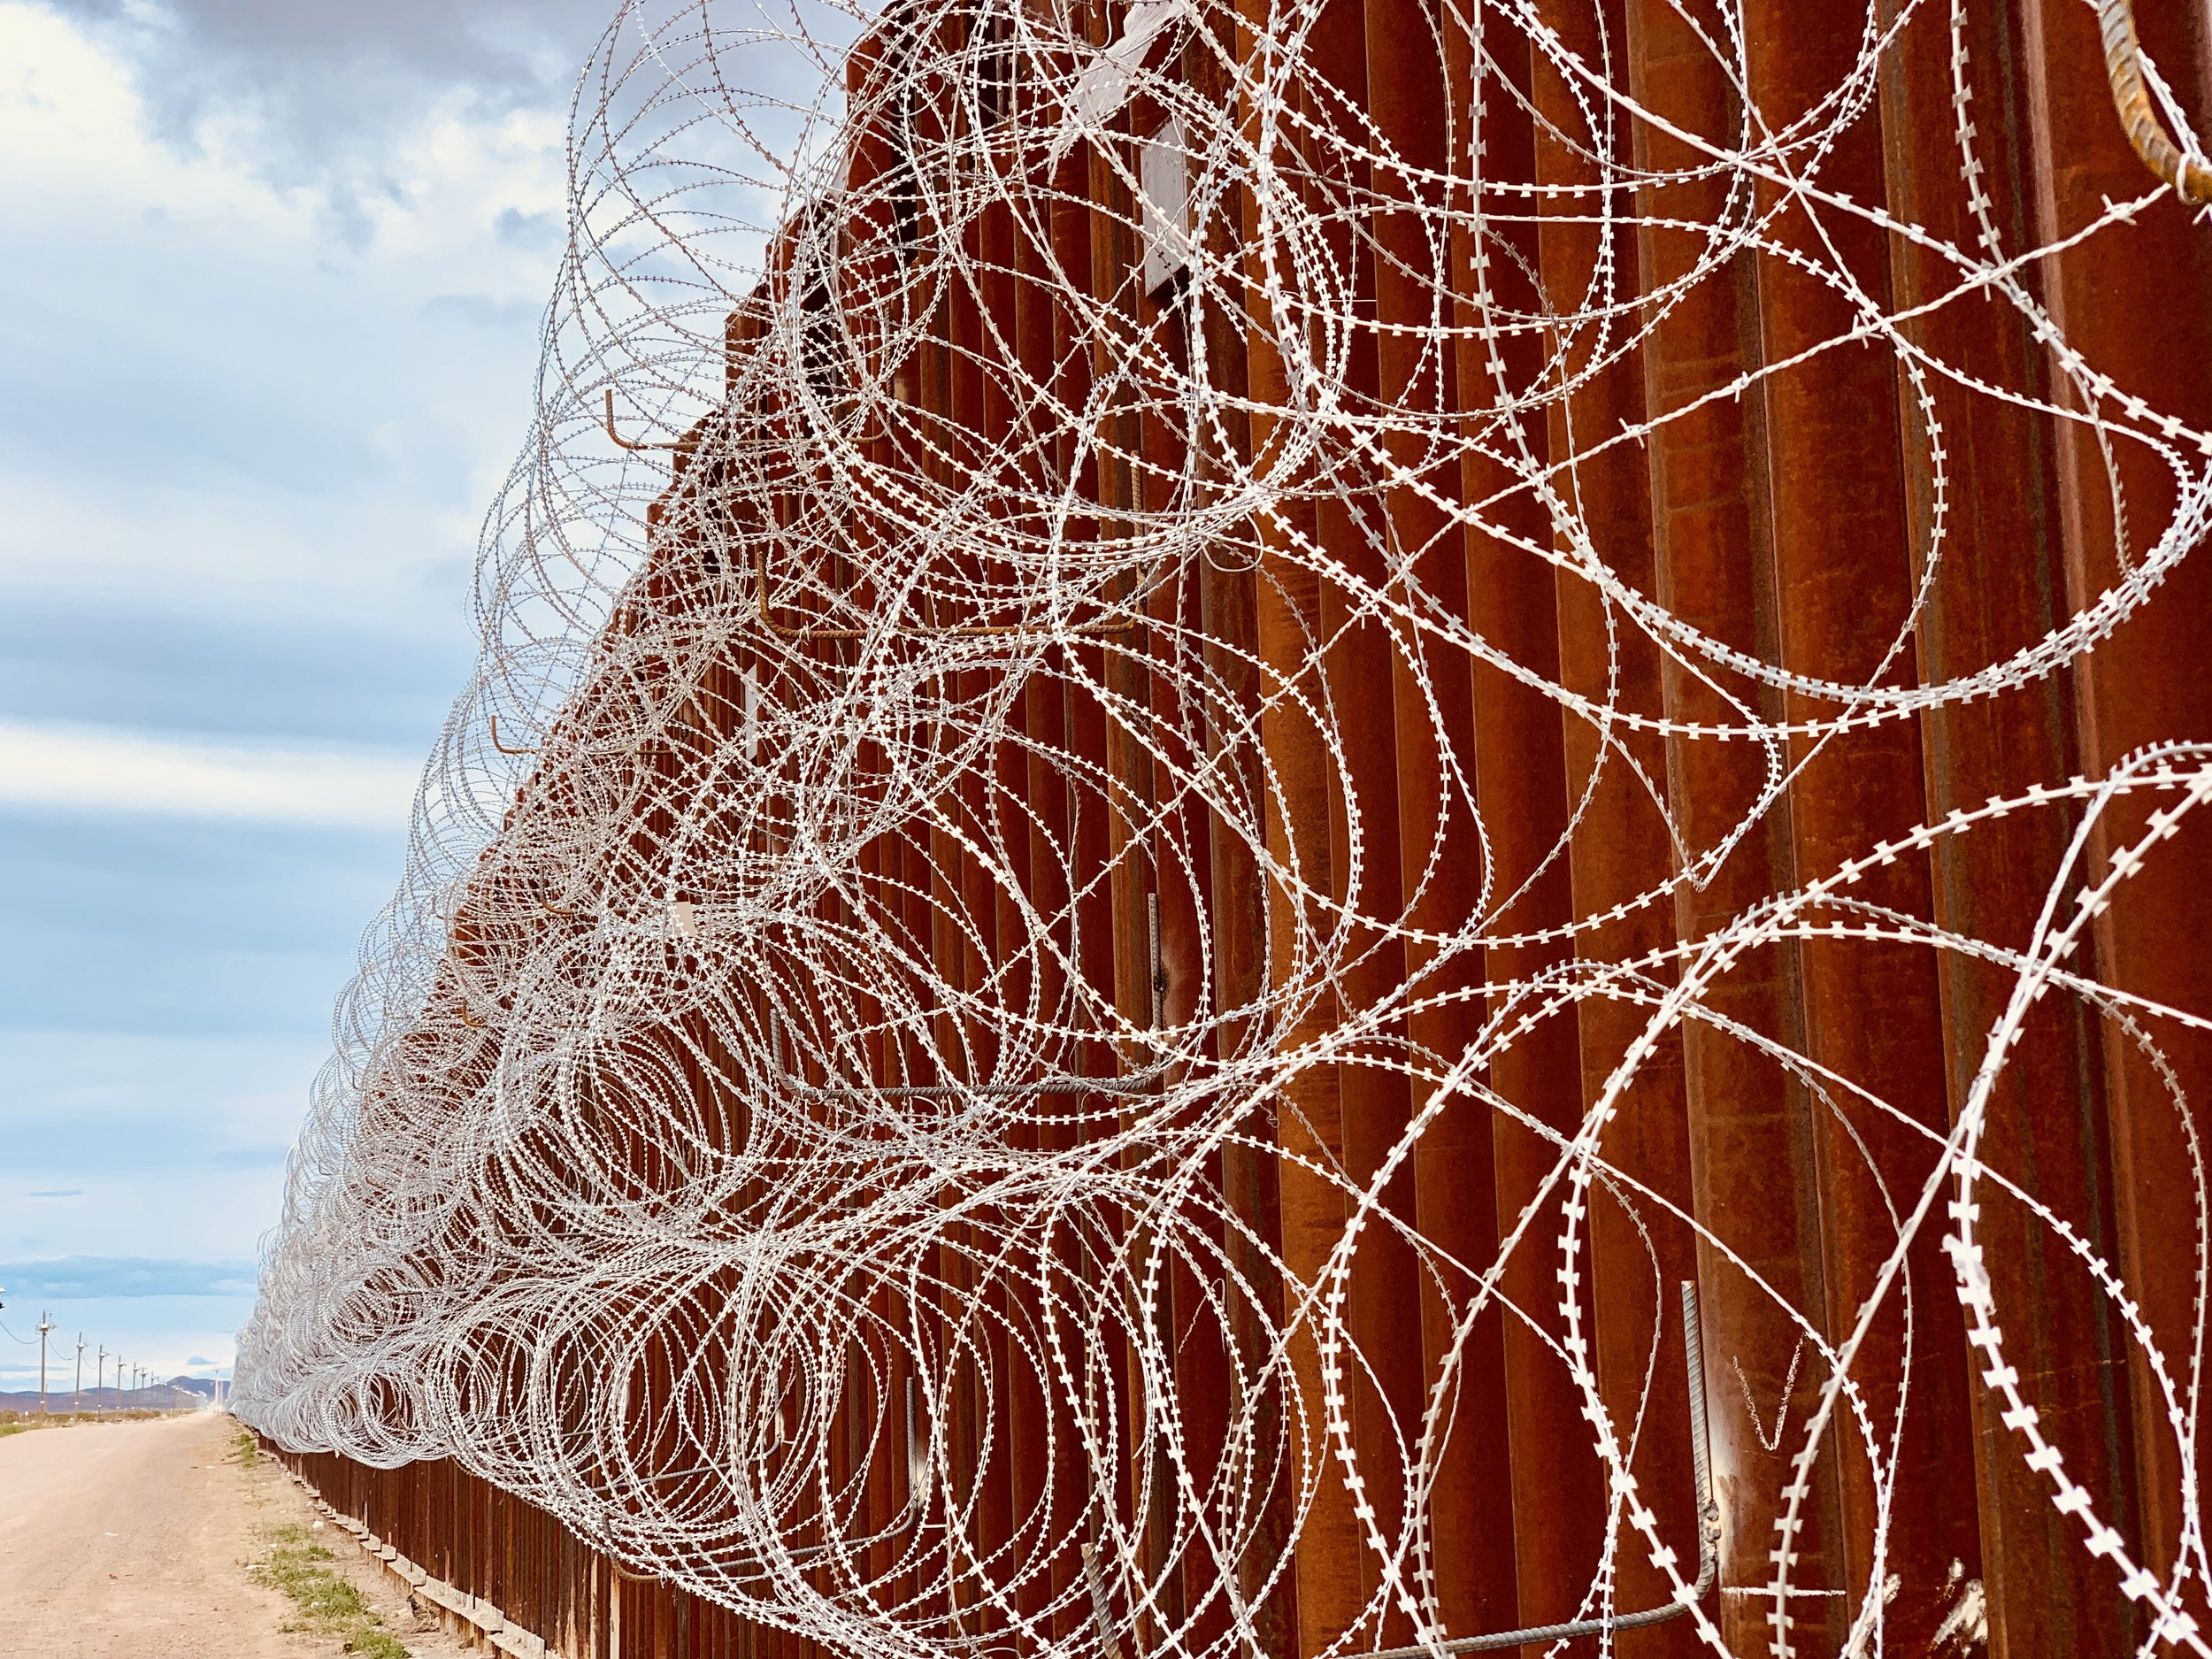 The Border Fence in Doulgas, AZ